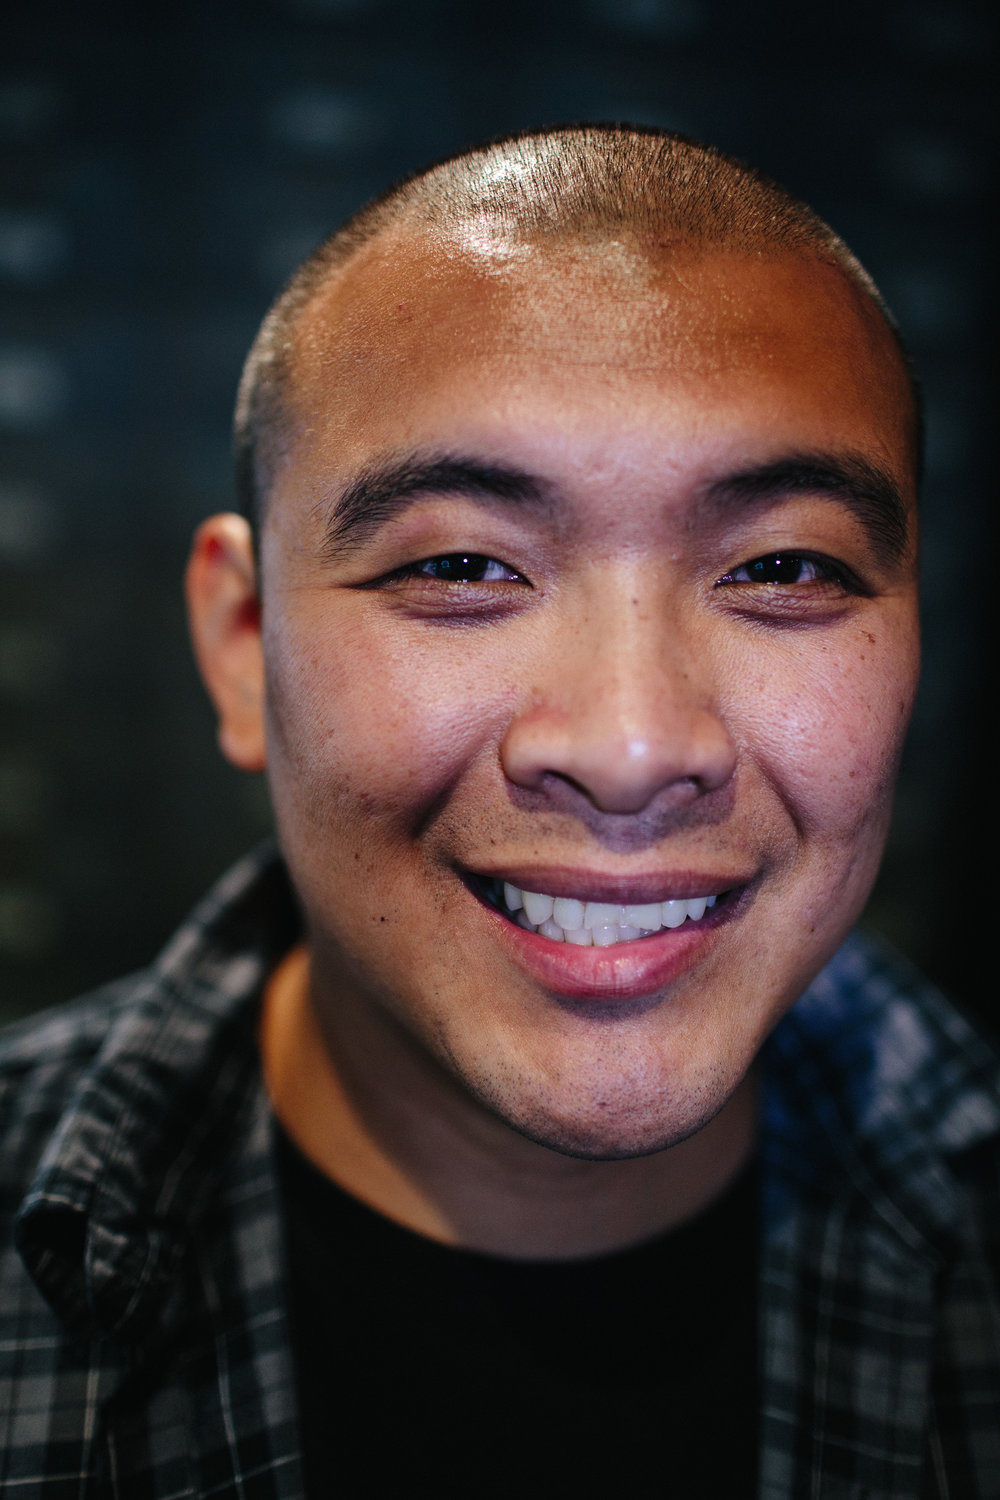 """Before coming to Code Tenderloin, I was without a job. I was lost with no sense of direction and lacked self confidence. Since completing Code Tenderloin, I'm now volunteering with Code Tenderloin and pursuing a degree in Computer Science.""  Charles Duong, , July 2017 Cohort"